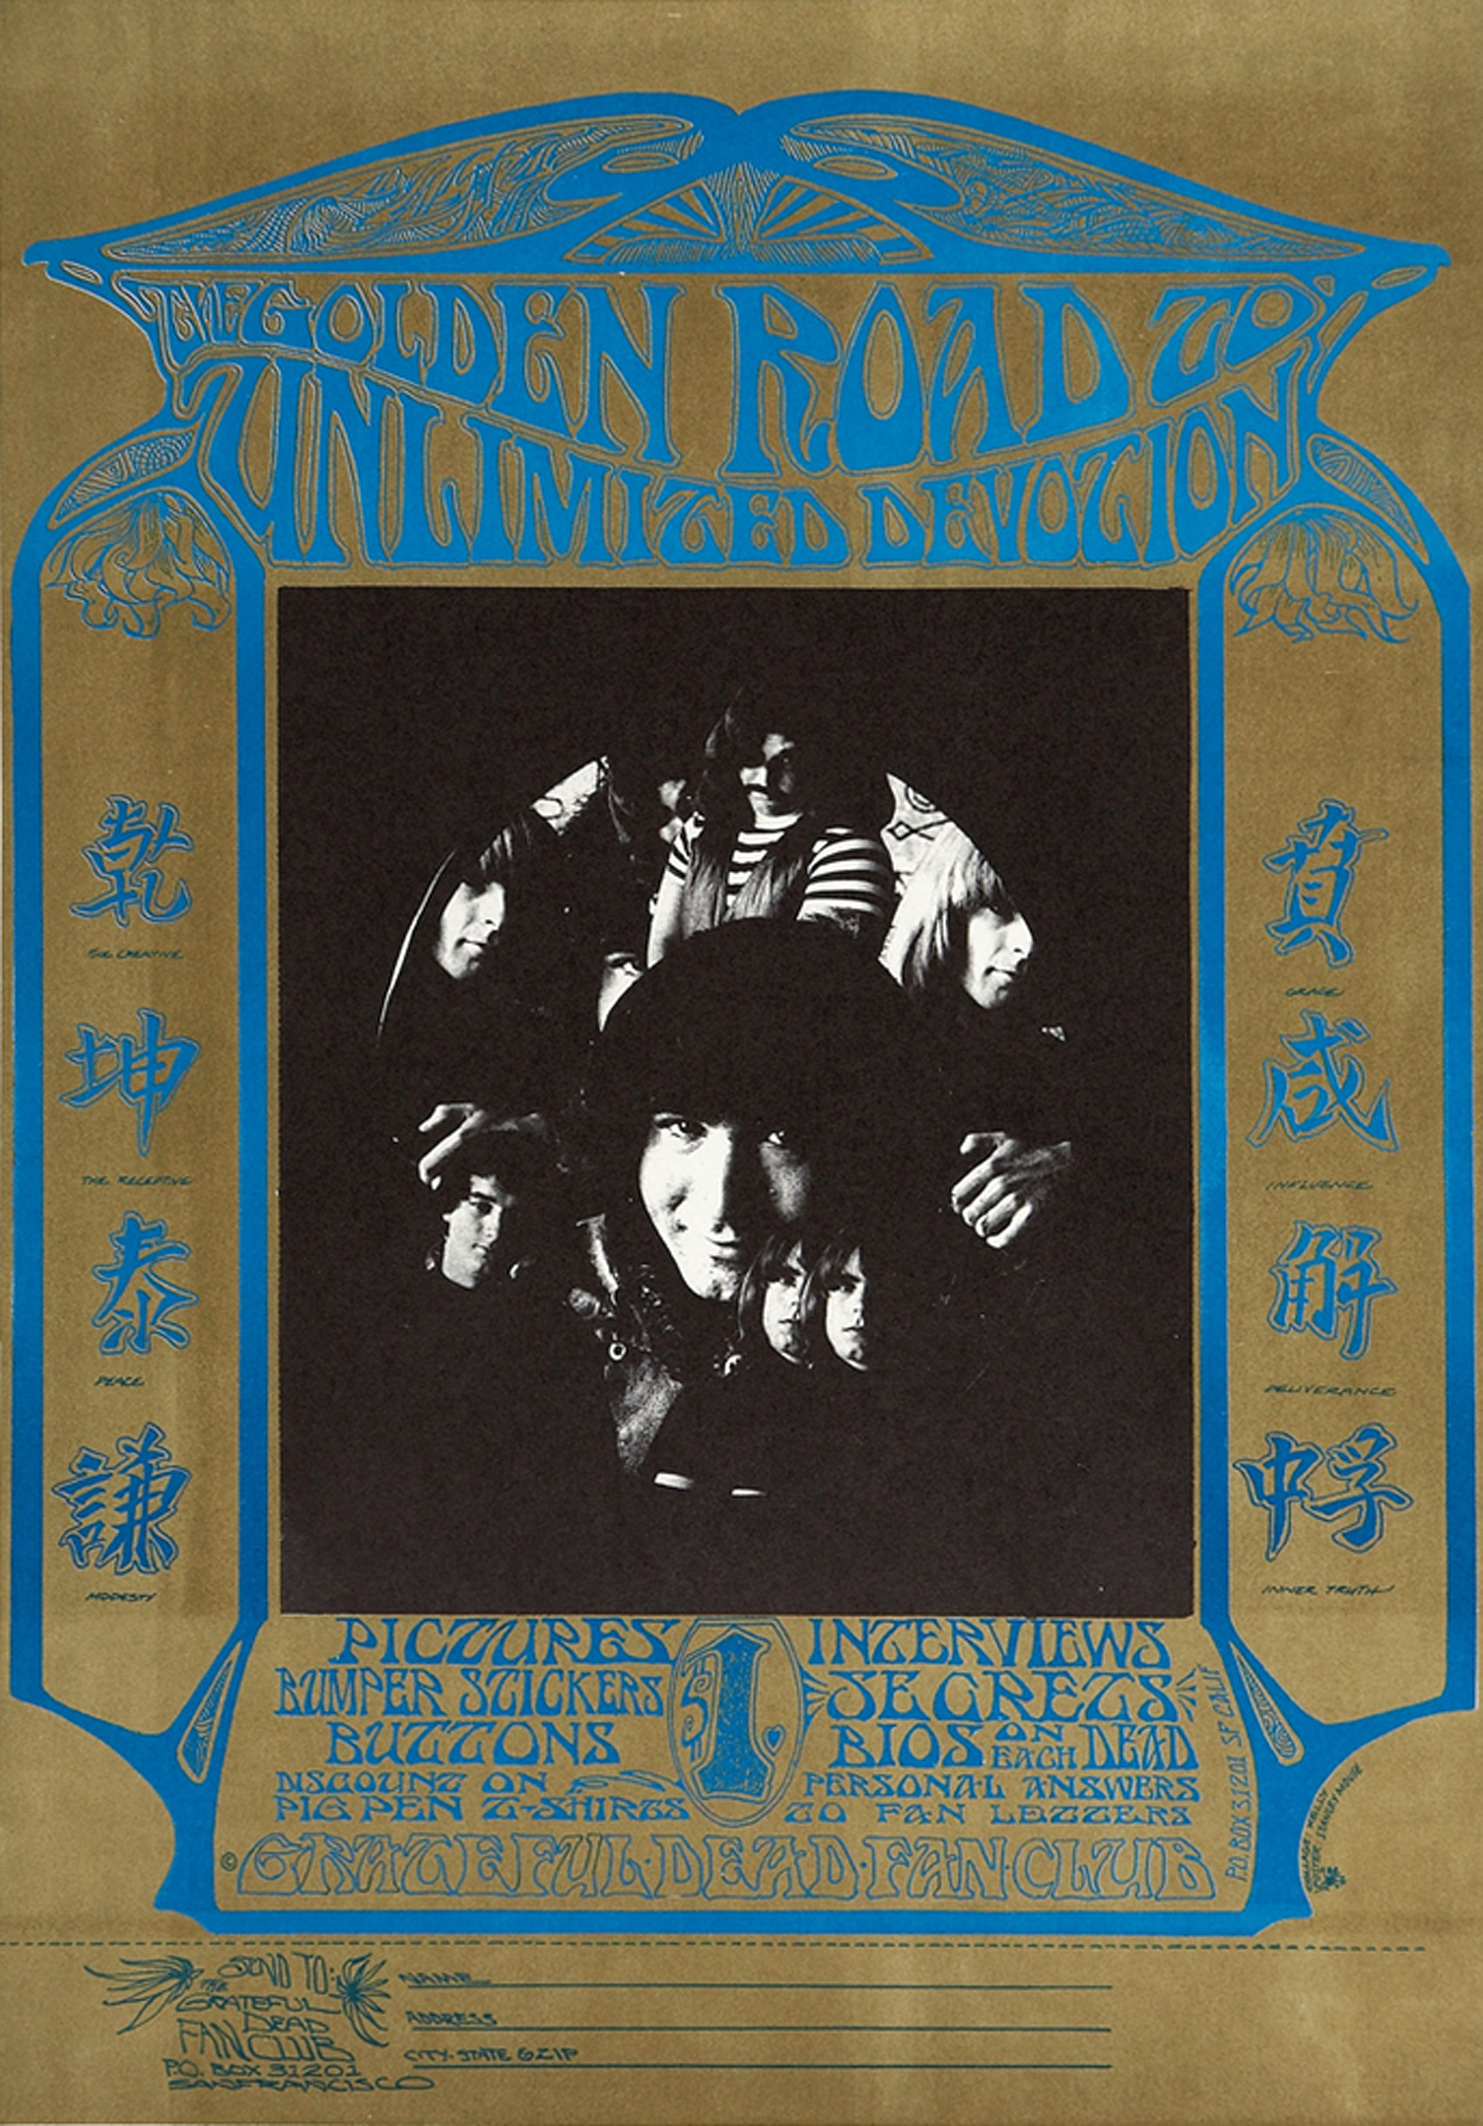 Grateful Dead Golden Road To Unlimited Devotion Fan Club 1967